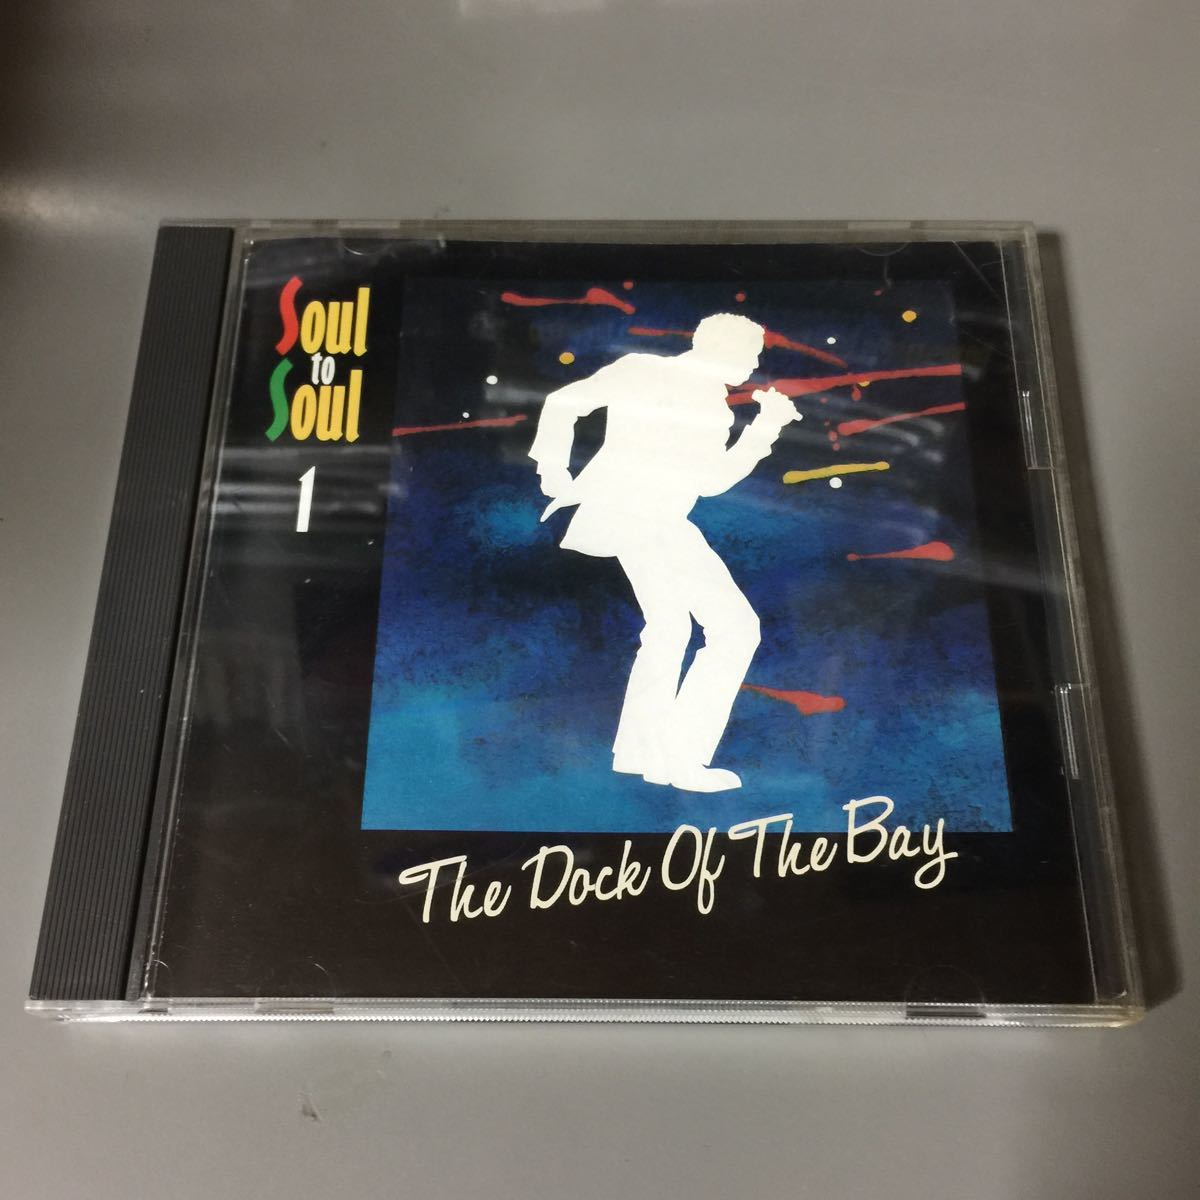 Soul to Soul 1【THE DOCK OF THE BAY】国内盤CD